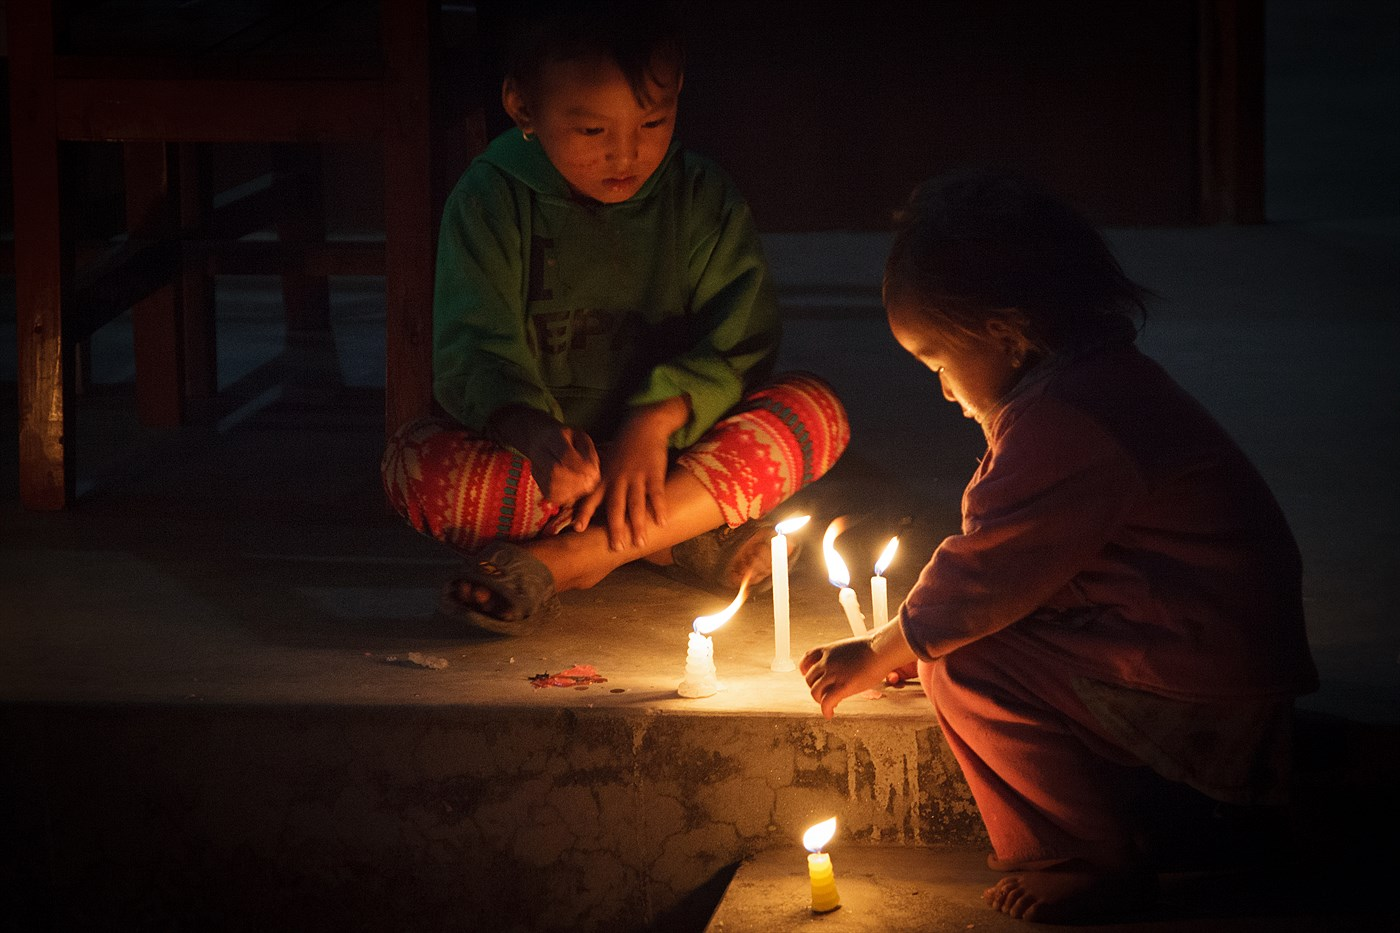 Tihar - festival of light, photo